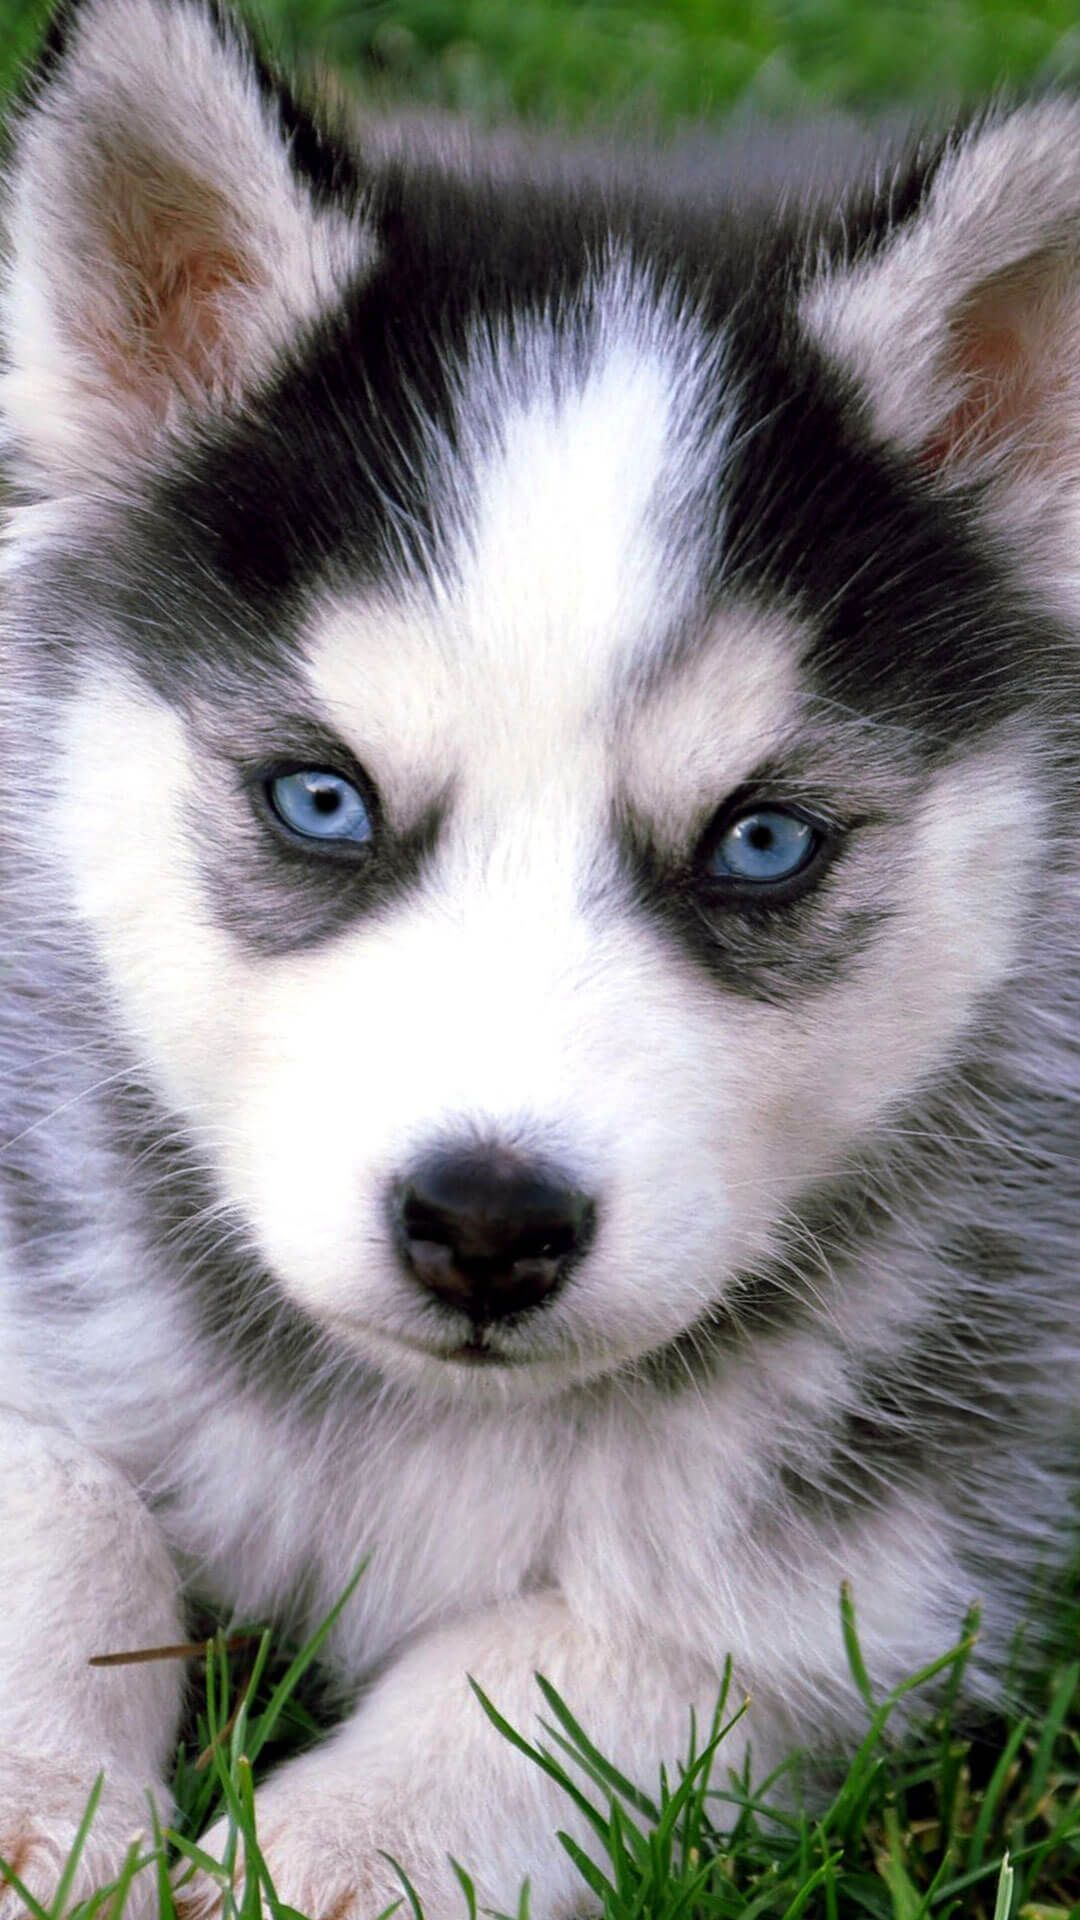 Husky Puppy Image With Images Cute Husky Puppies Husky Puppy